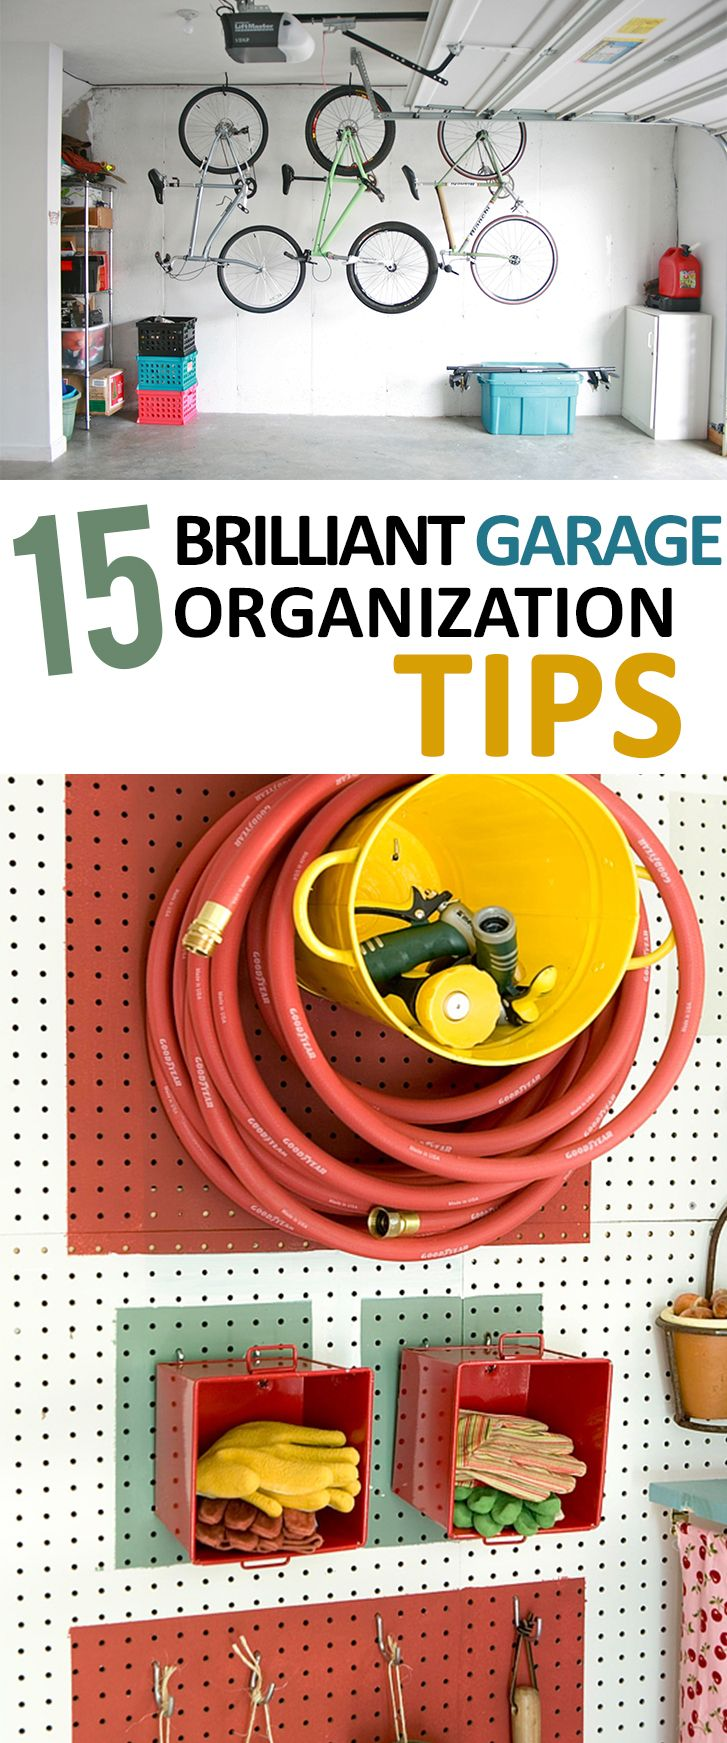 Garage Organization, Garage Organization Tips, Organization Hacks, Popular  Pin, Organization Tips And Tricks, Home Organization, Home Organization  Hacks